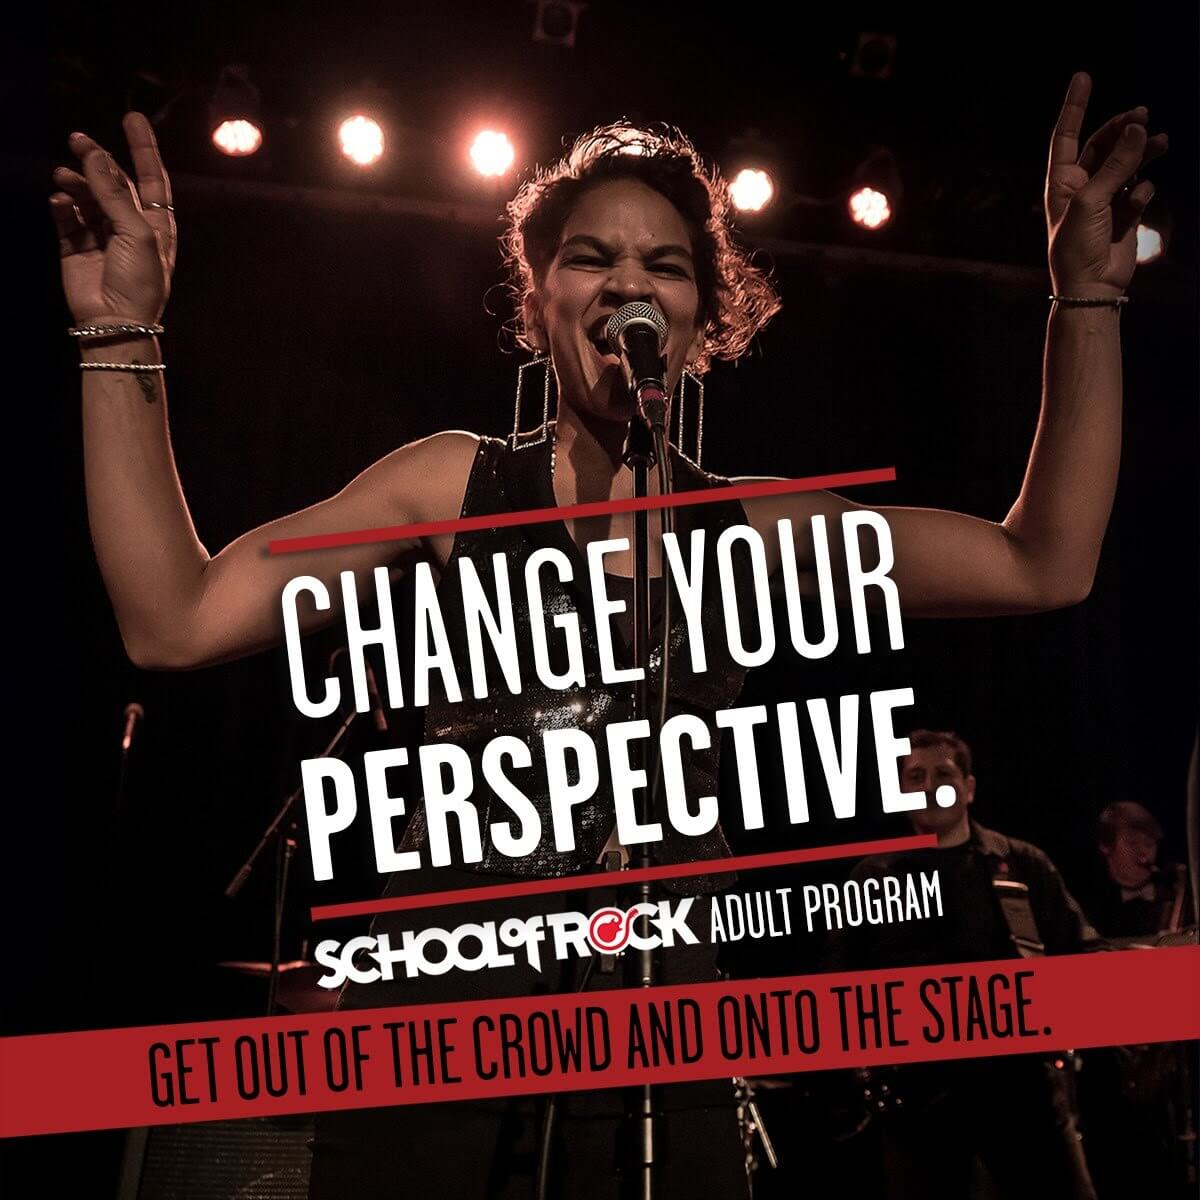 Grad School. School of Rock is not just for kids. We have a very well developed program for those 18-98. Don't ever say I should've, you can. Join the School of Rock Grad School and you will be learning to play and perform!